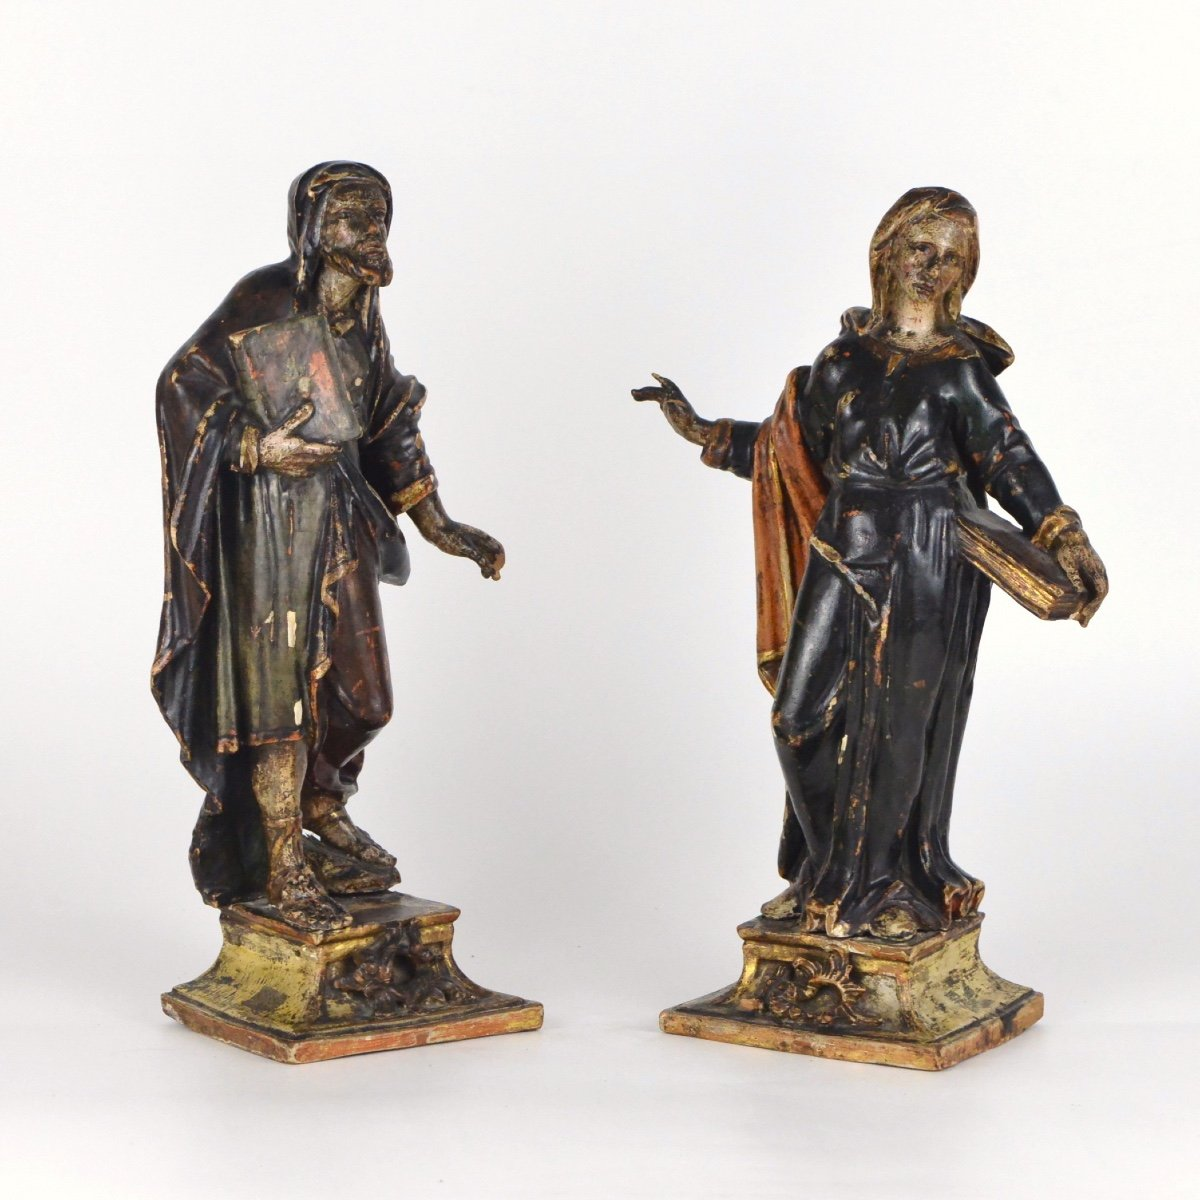 Pair Of Carved And Polychromed Wooden Sculptures Of Saints Holding A Book XVIIth Century